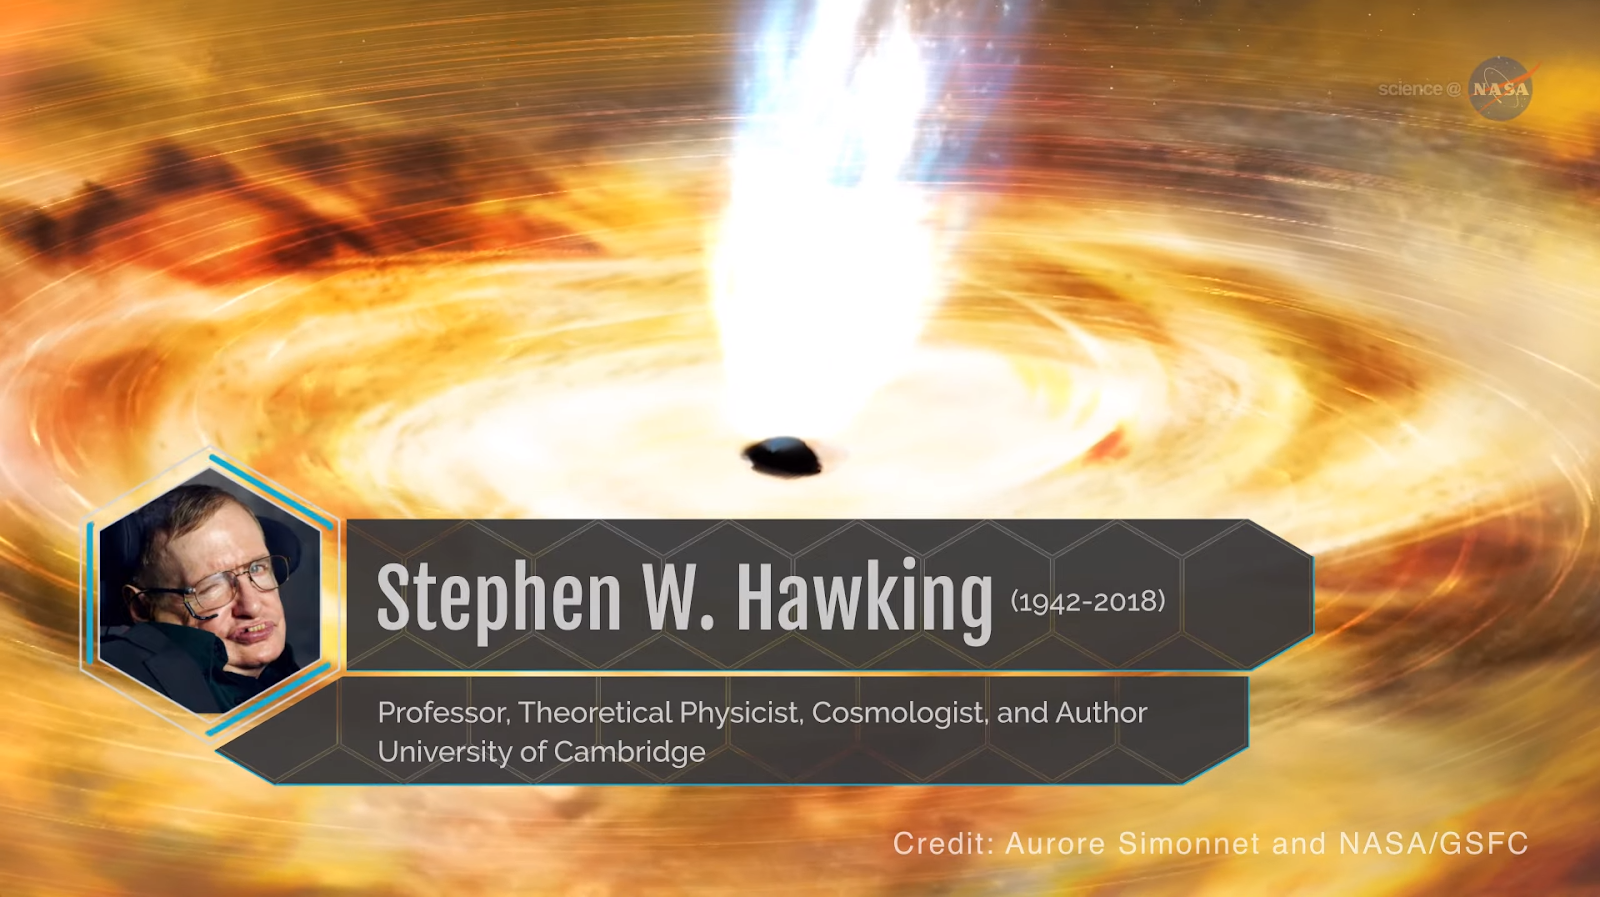 Stephen Hawking's contributions black holes